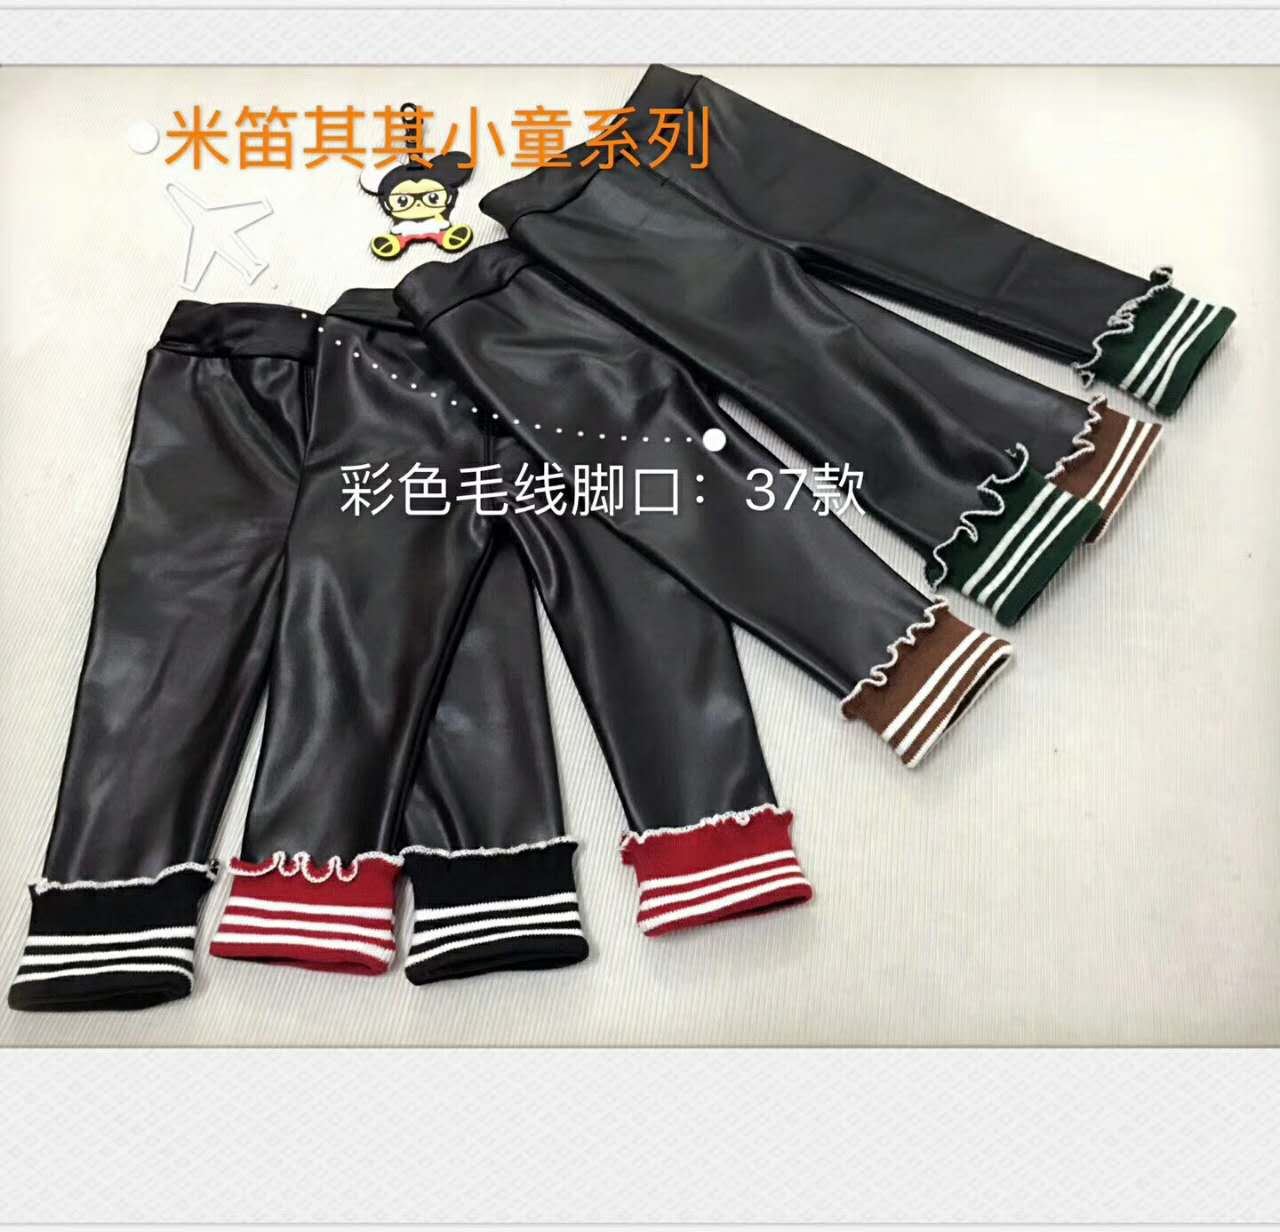 Rib trims hot selling sweater use sleeves use and collar use garment accessory widely used in garments